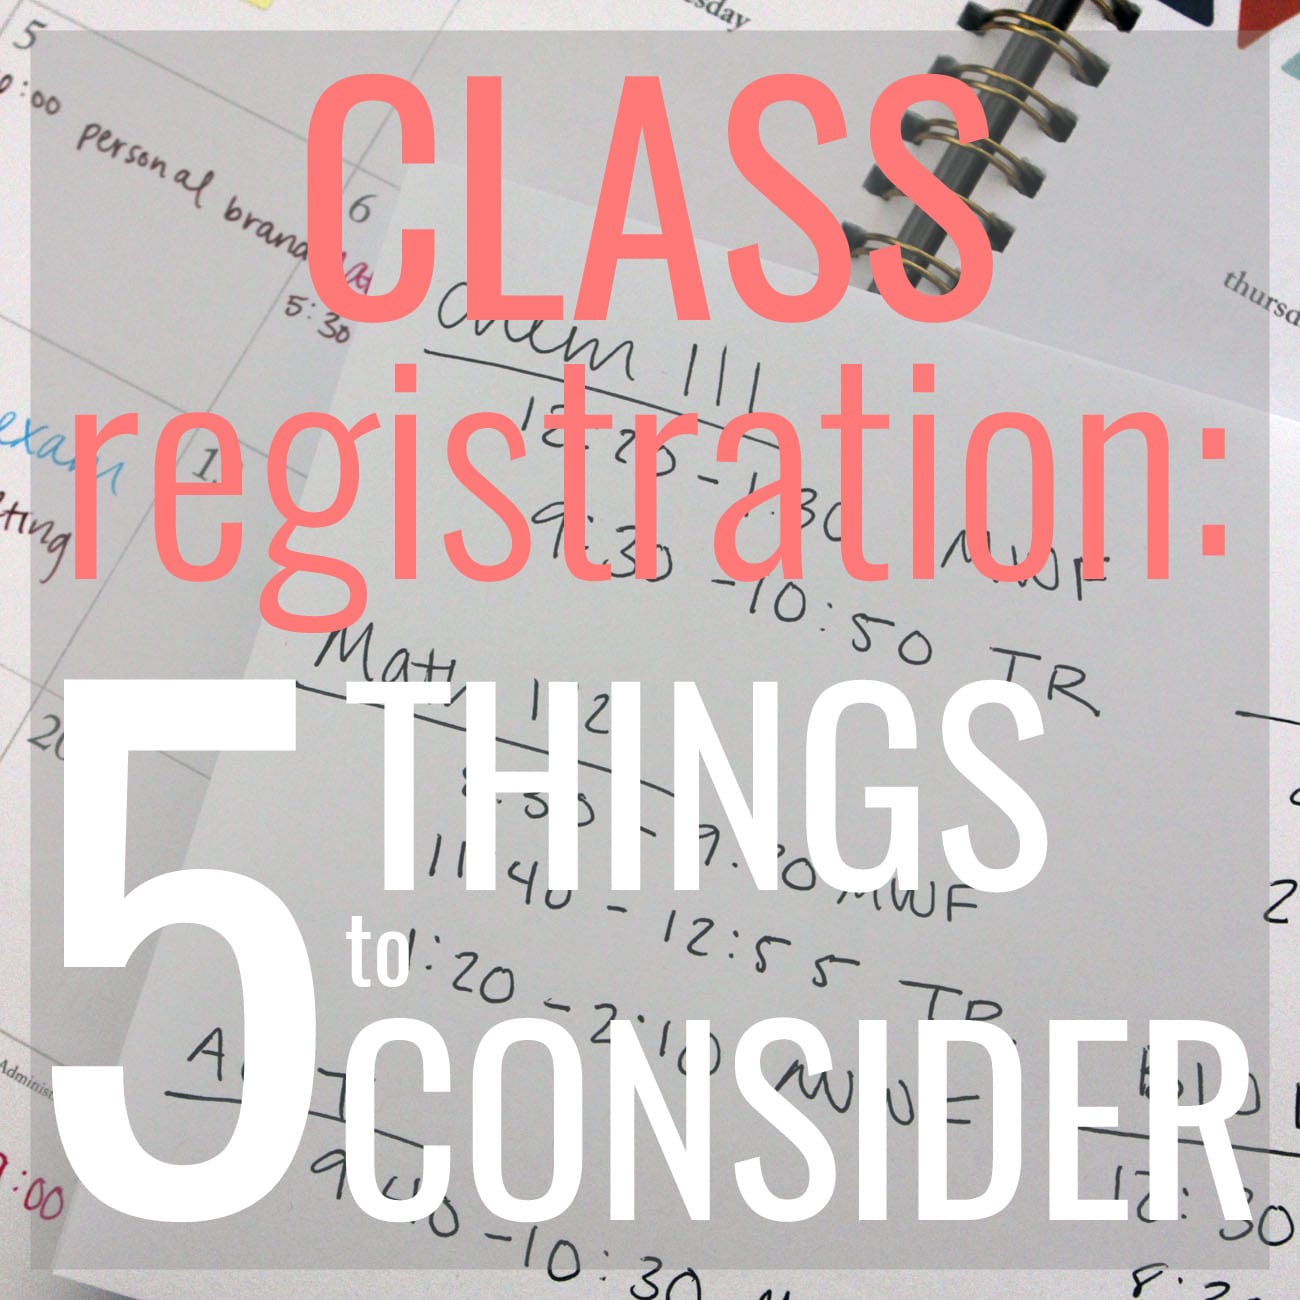 5 things to consider when registering for classes